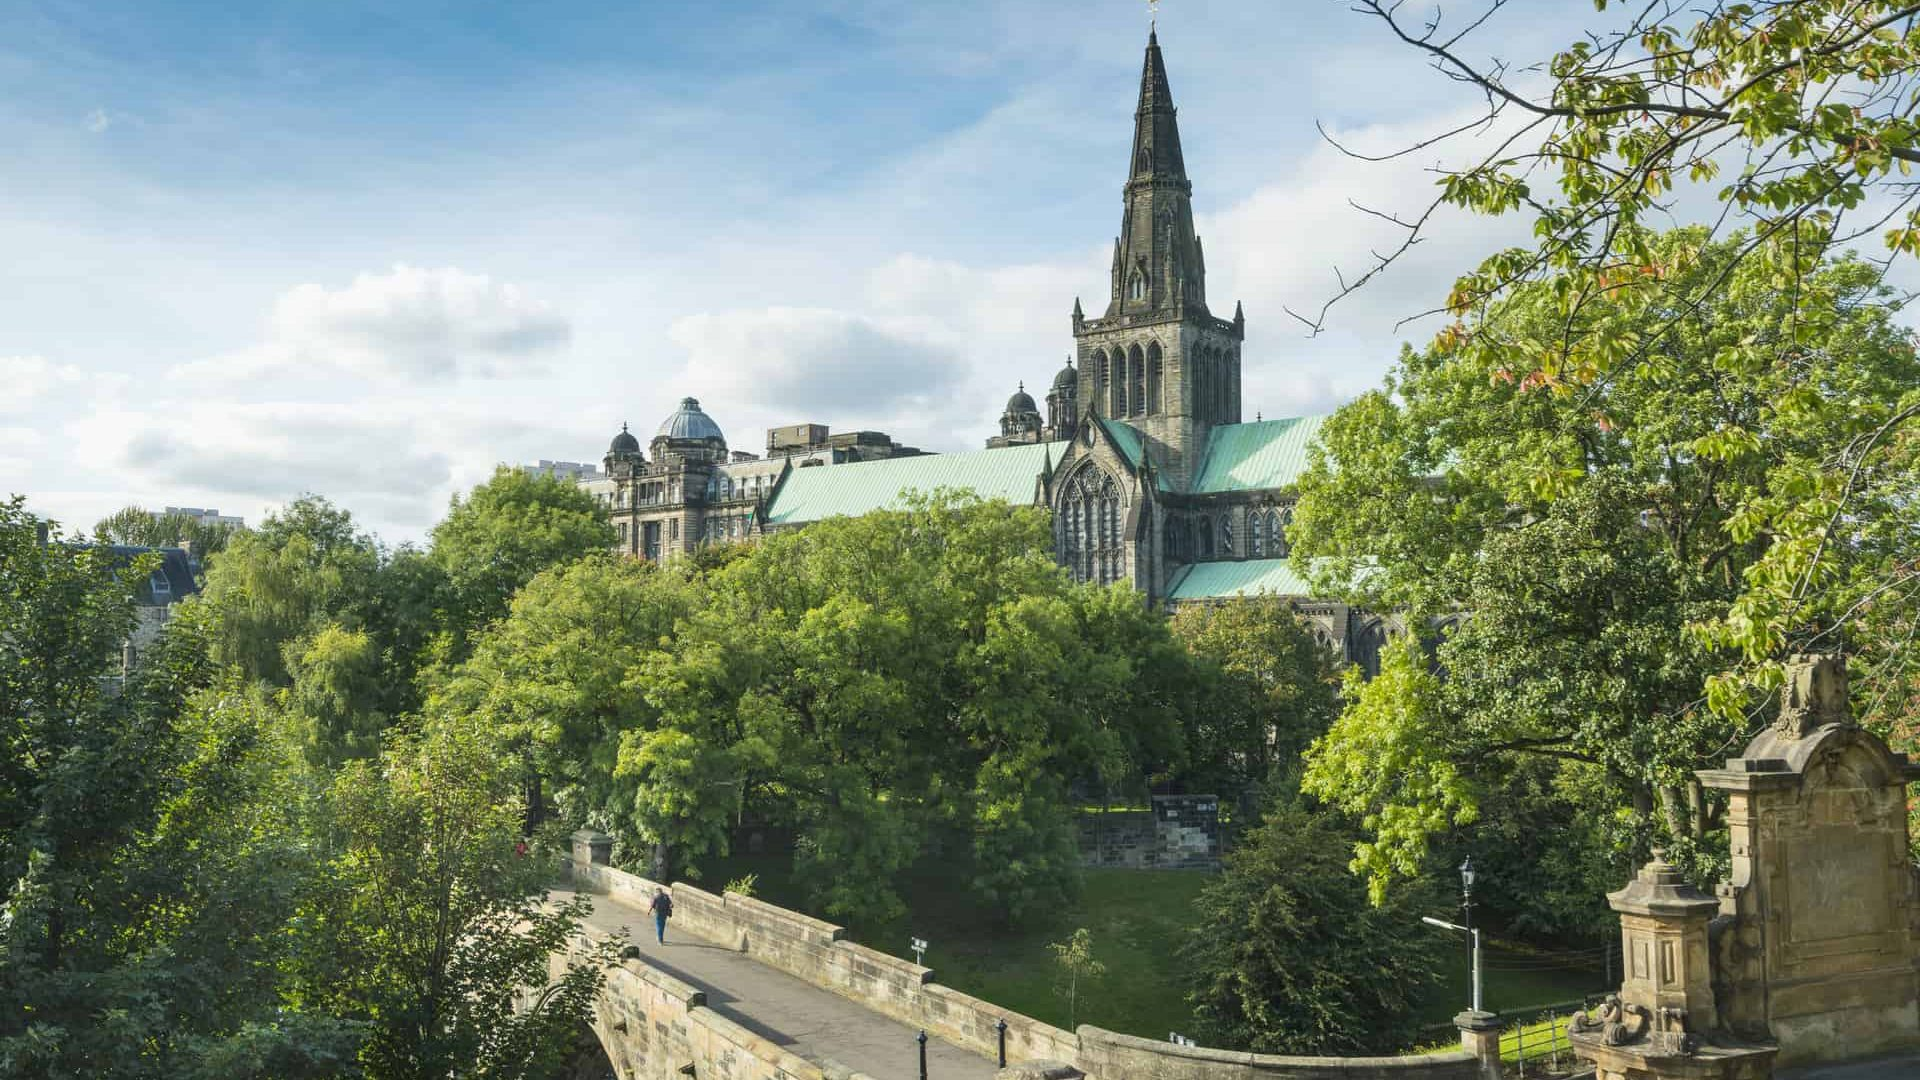 Glasgow Cathedral. Thought to have been built on the site of St Kentigern's tomb and marks the birthplace of the city of Glasgow.